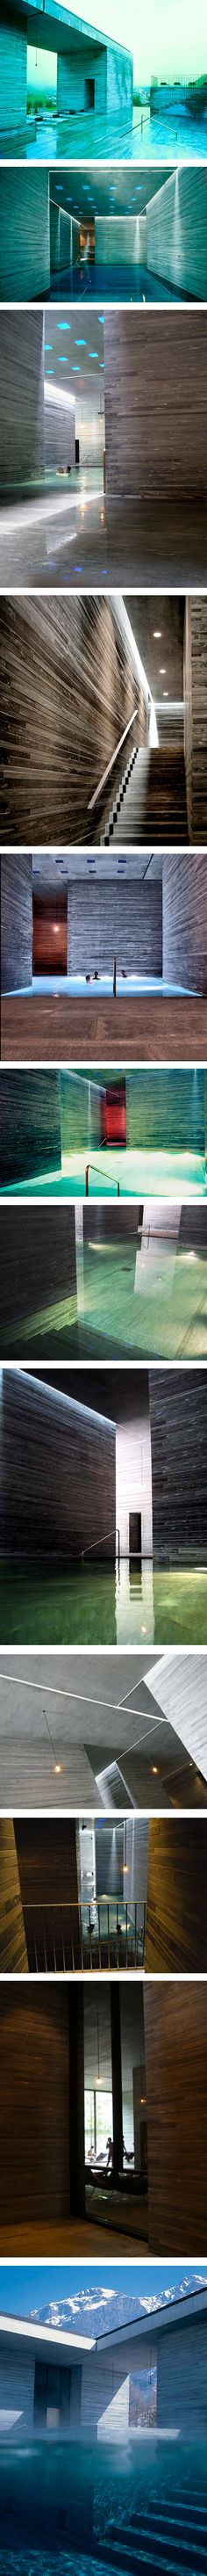 hot springs [vals, switzerland] - peter zumthor.